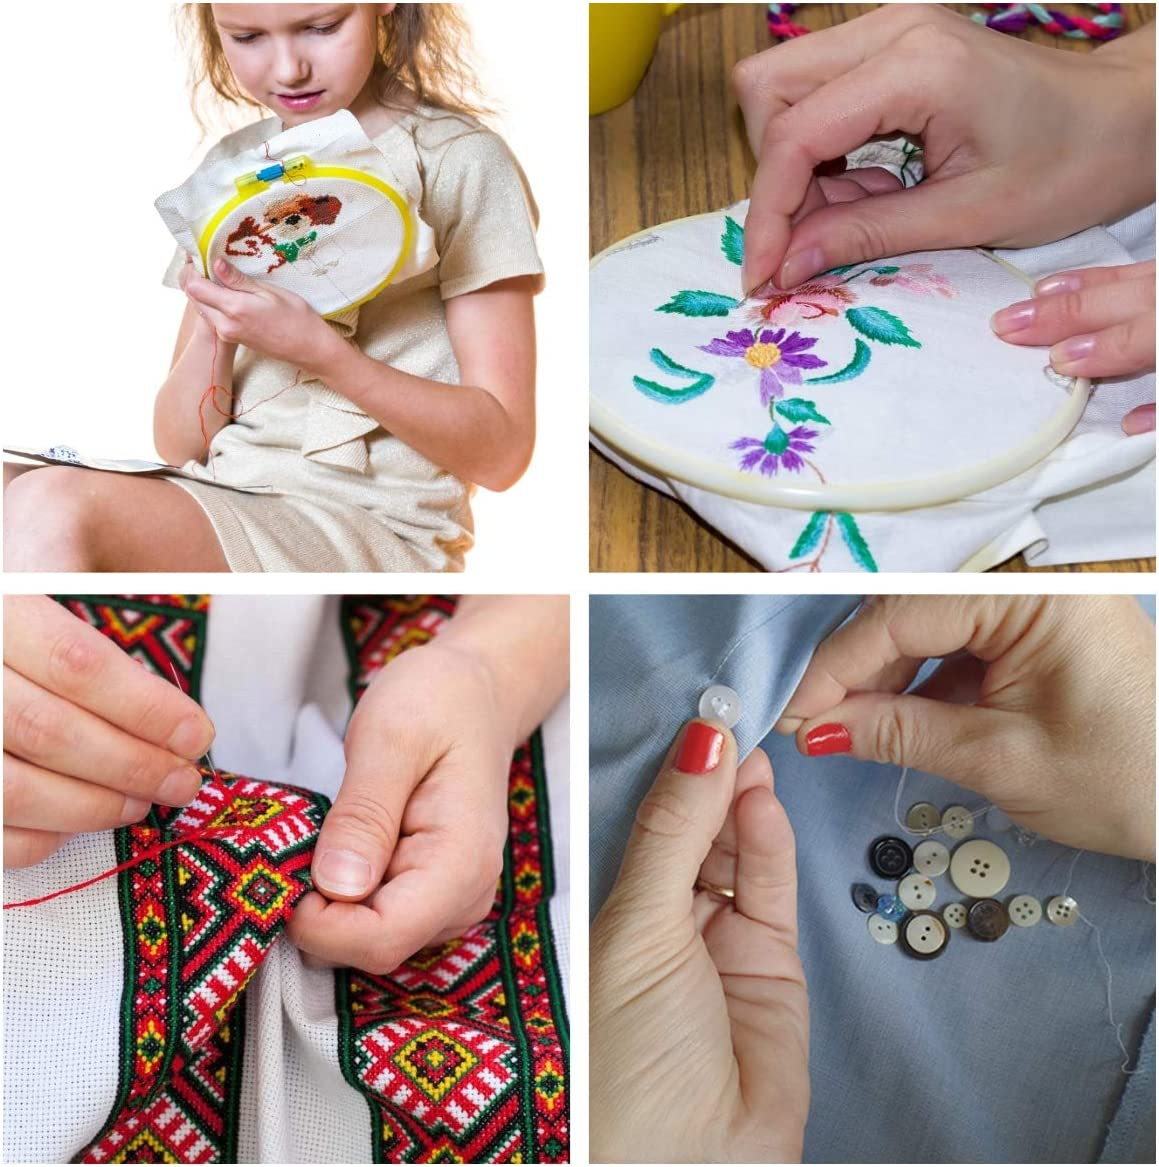 3 PCS Aida Cloth 40 Sewing Pins 5 PCS Bamboo Embroidery Hoops MAKEASY 205 PCS Embroidery Starter Kit with Instructions 100 Colors Threads Cross Stitch Tools for Adults and Kids Beginners